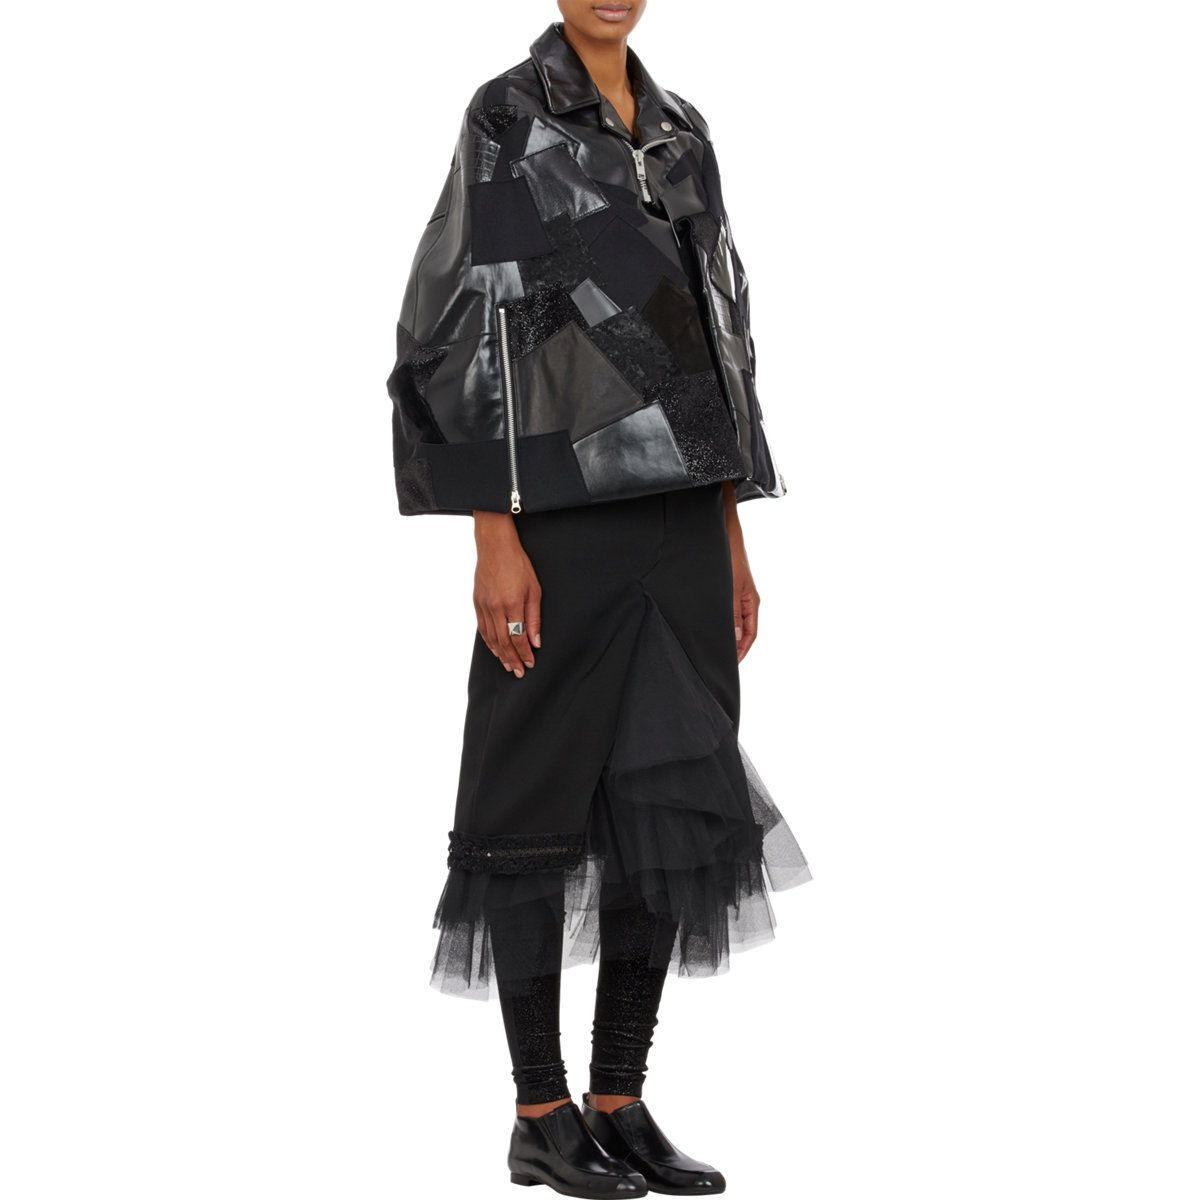 http://www.lyst.com/clothing/junya-watanabe-patchwork-mixed-fabric-biker-cape-black/?product-gallery=45294639